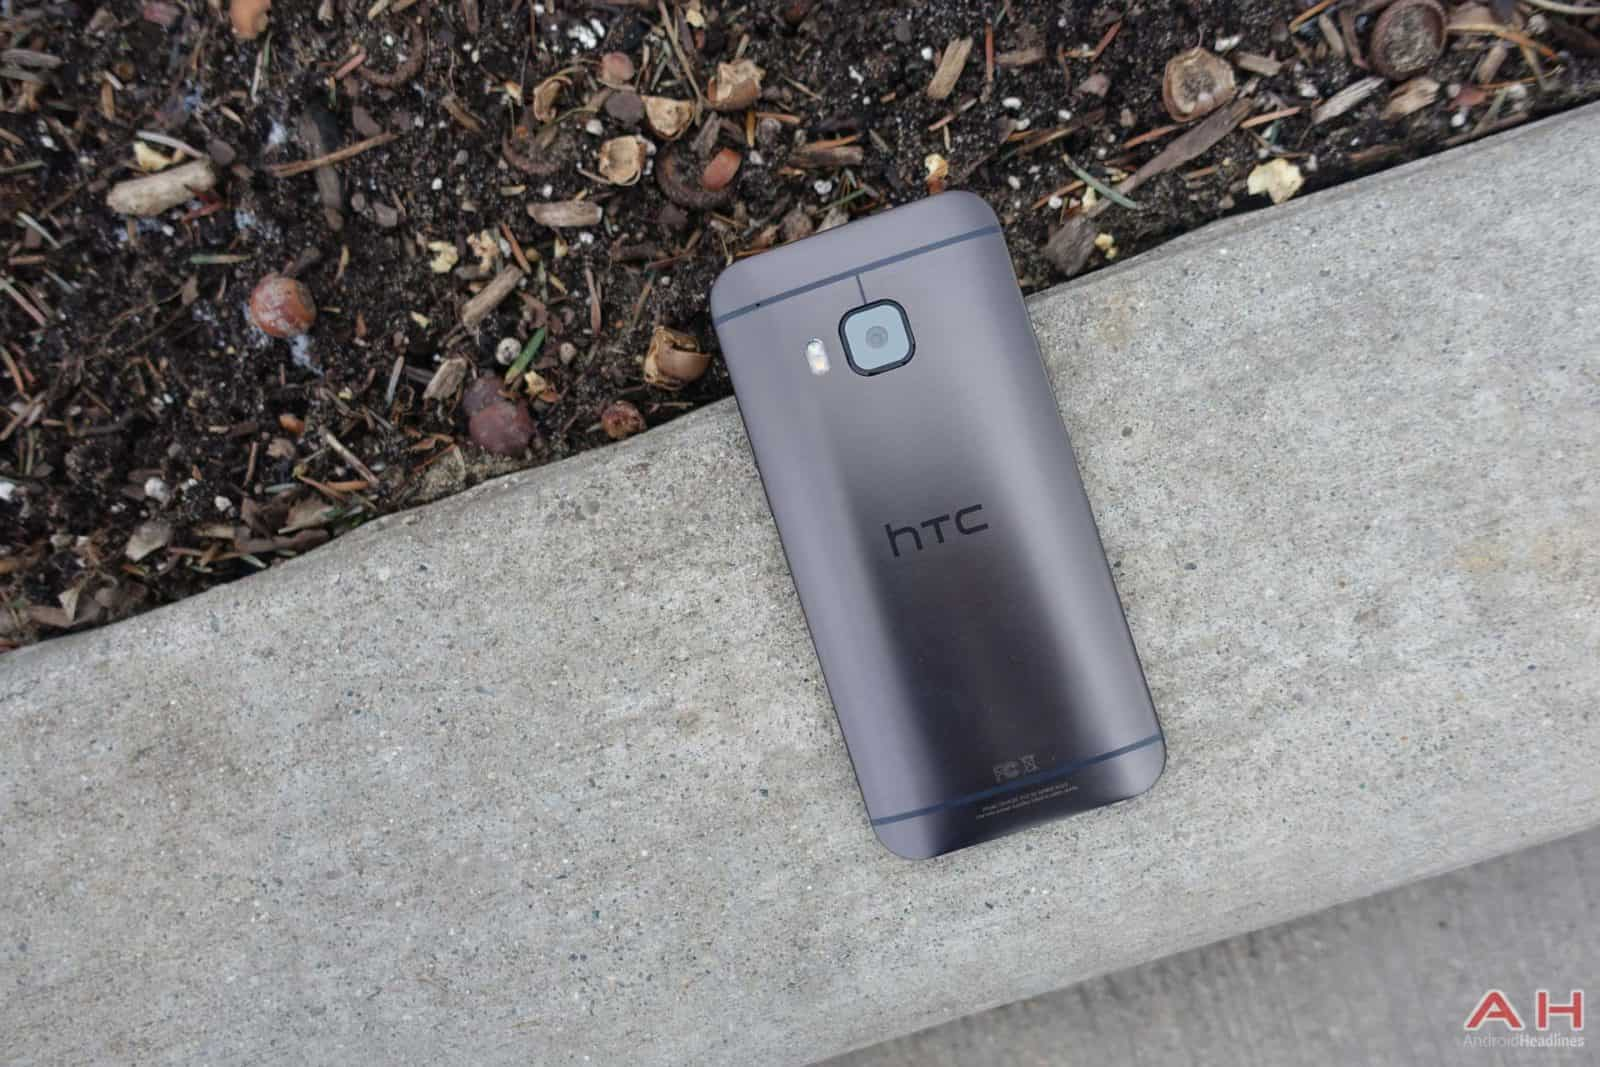 HTC-One-M9-Review-AH-49